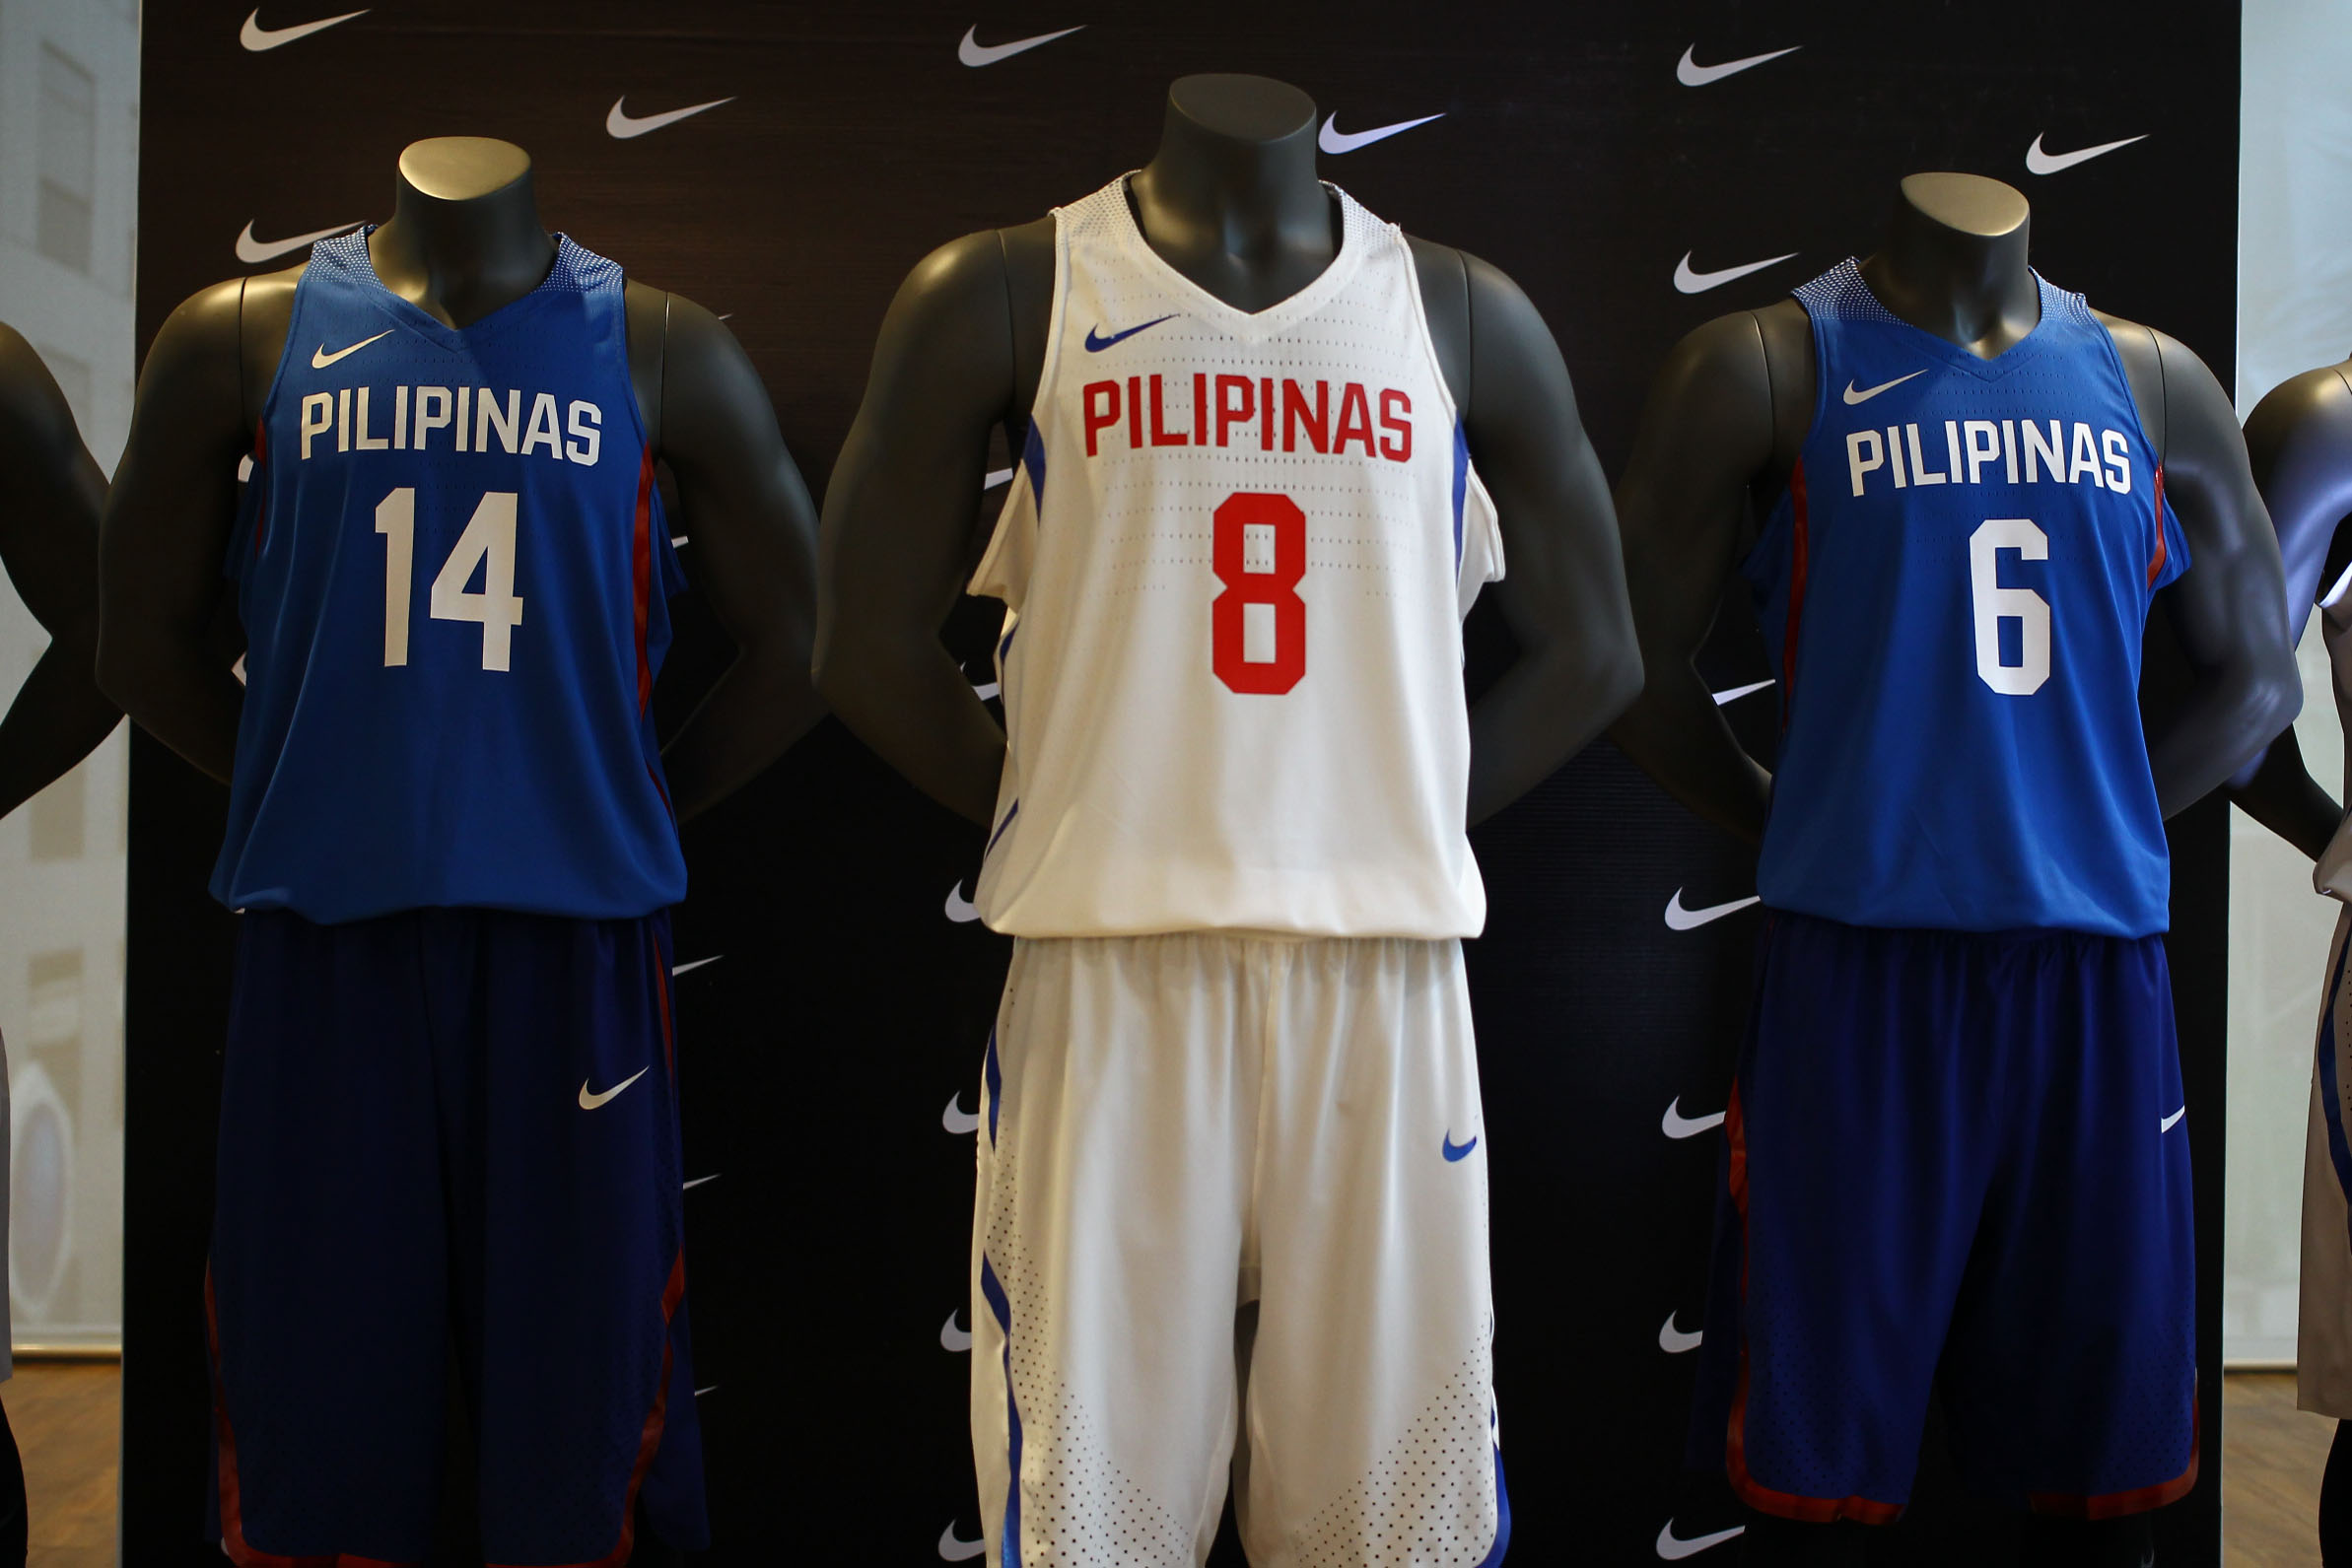 b17442aa29ae IN PHOTOS  New Gilas Pilipinas jerseys unveiled